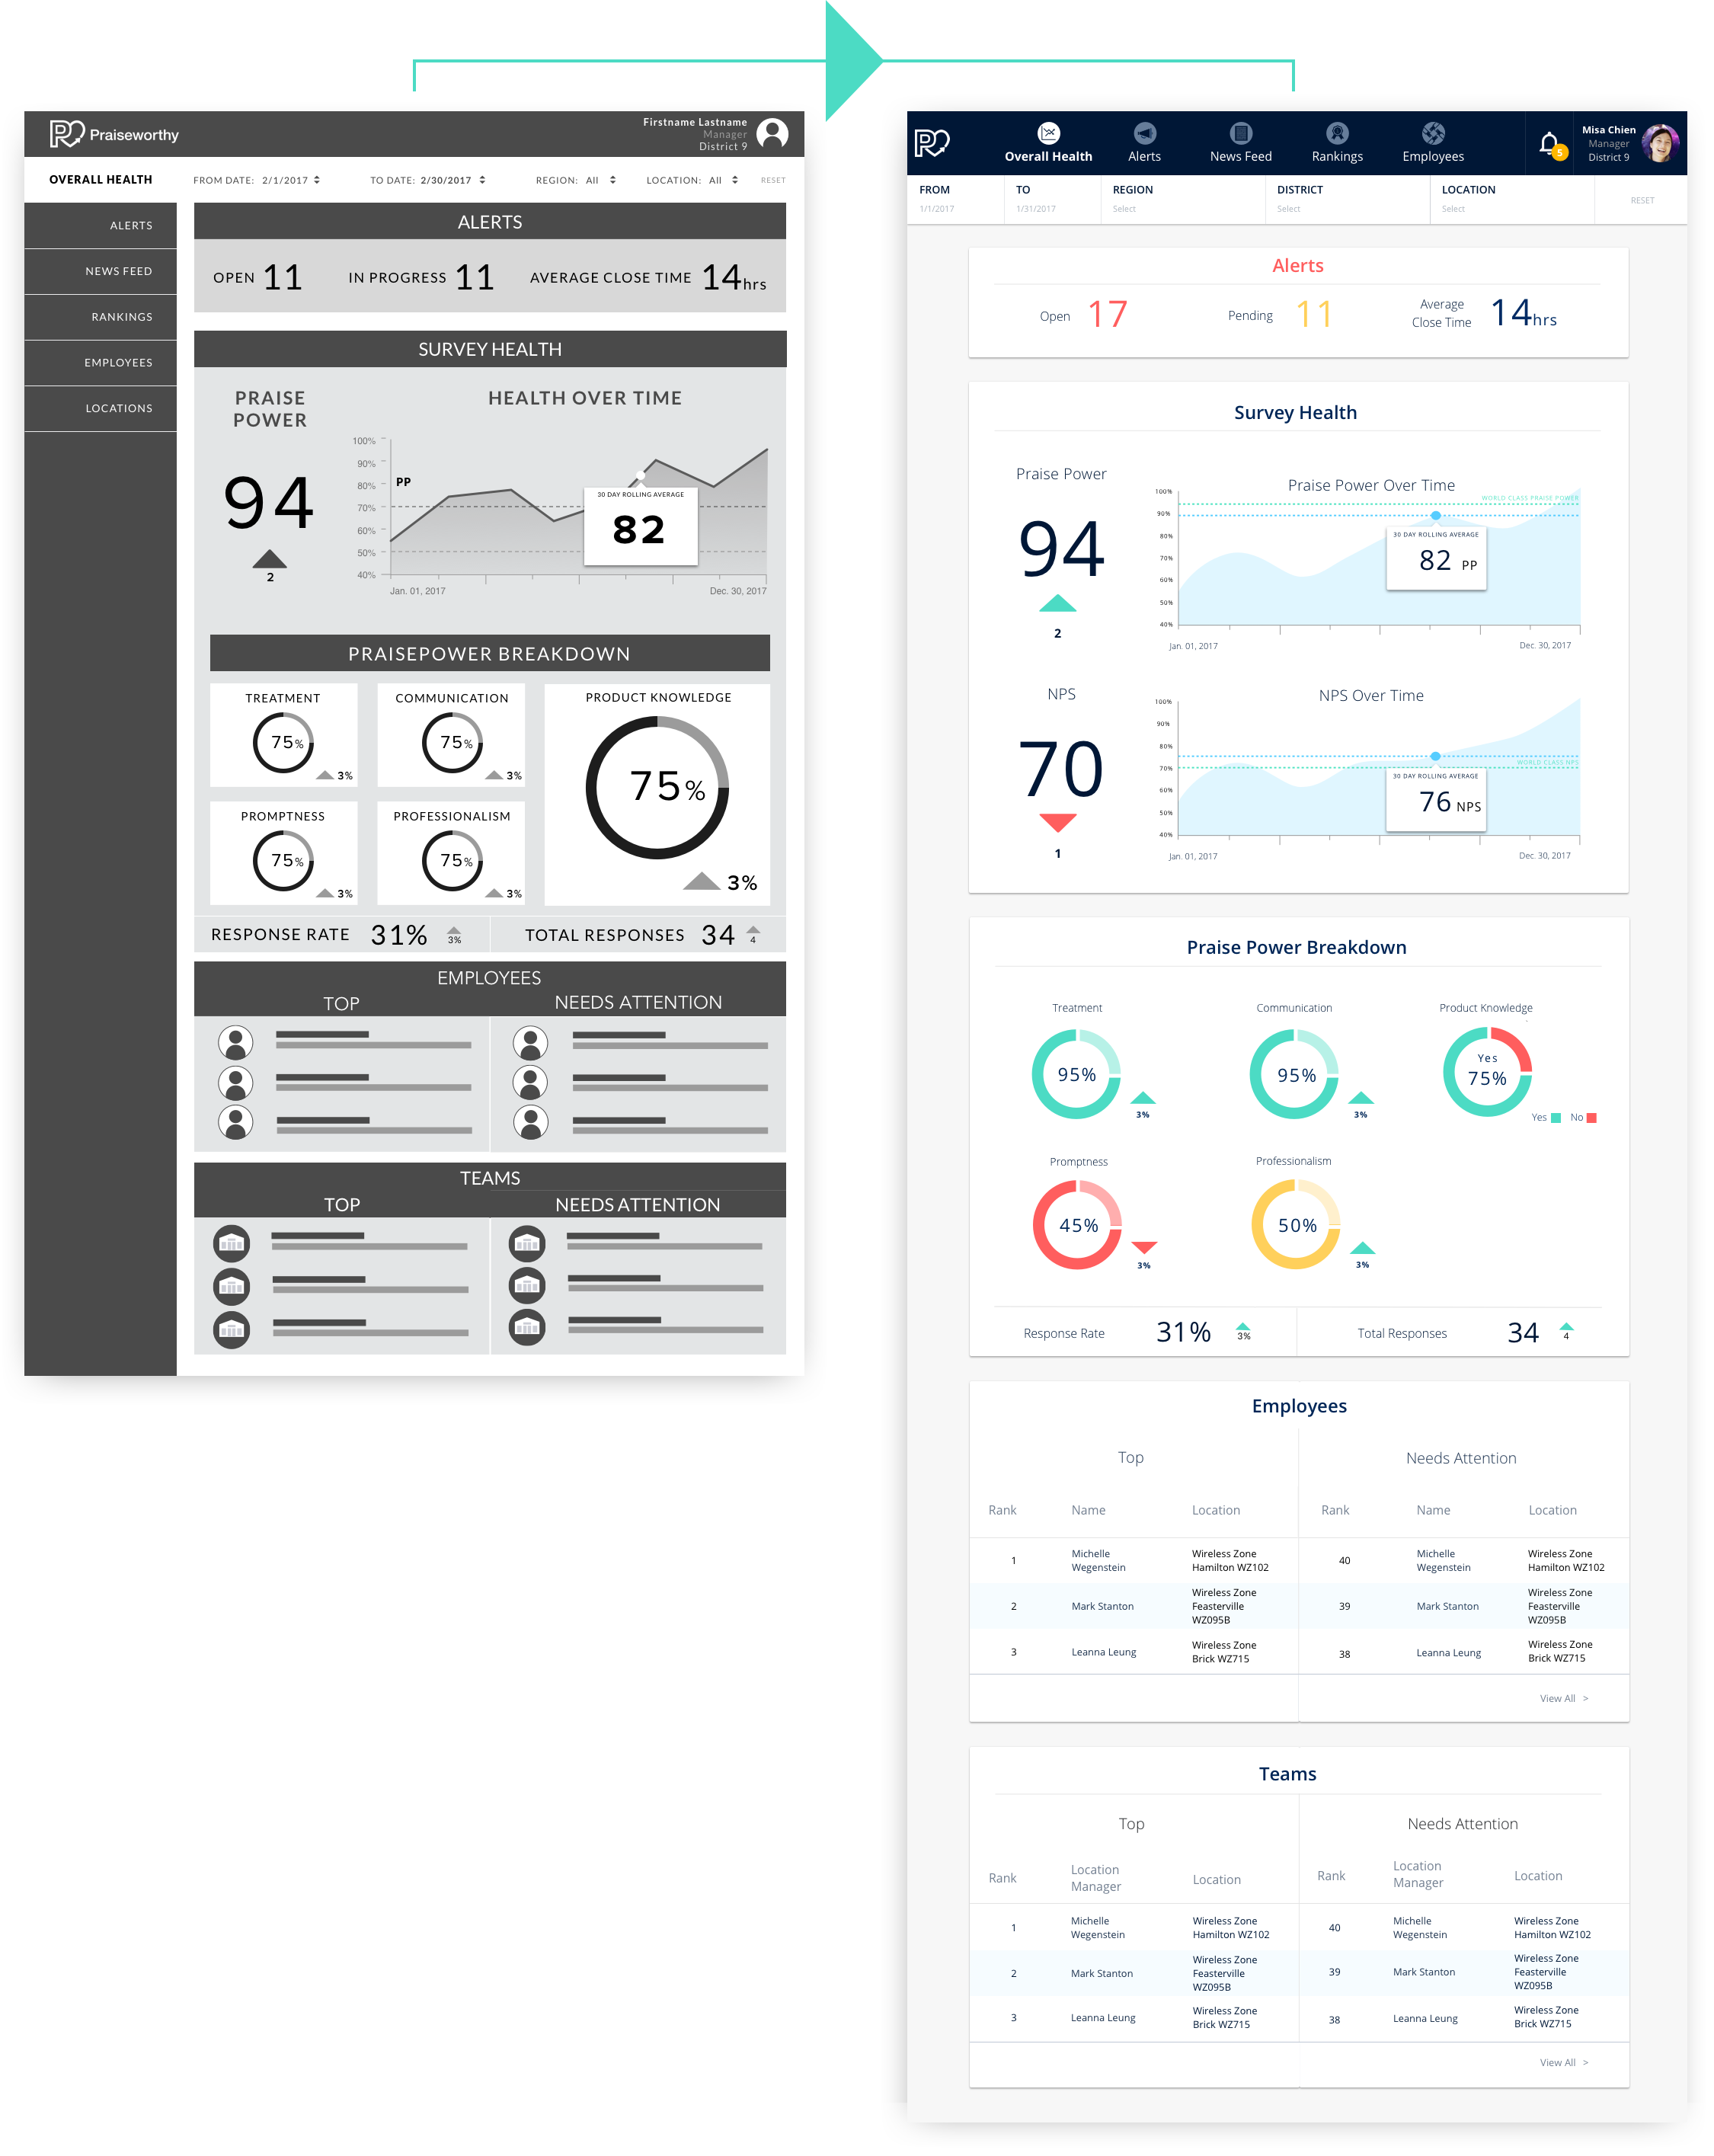 Overall Health Page (Dashboard)